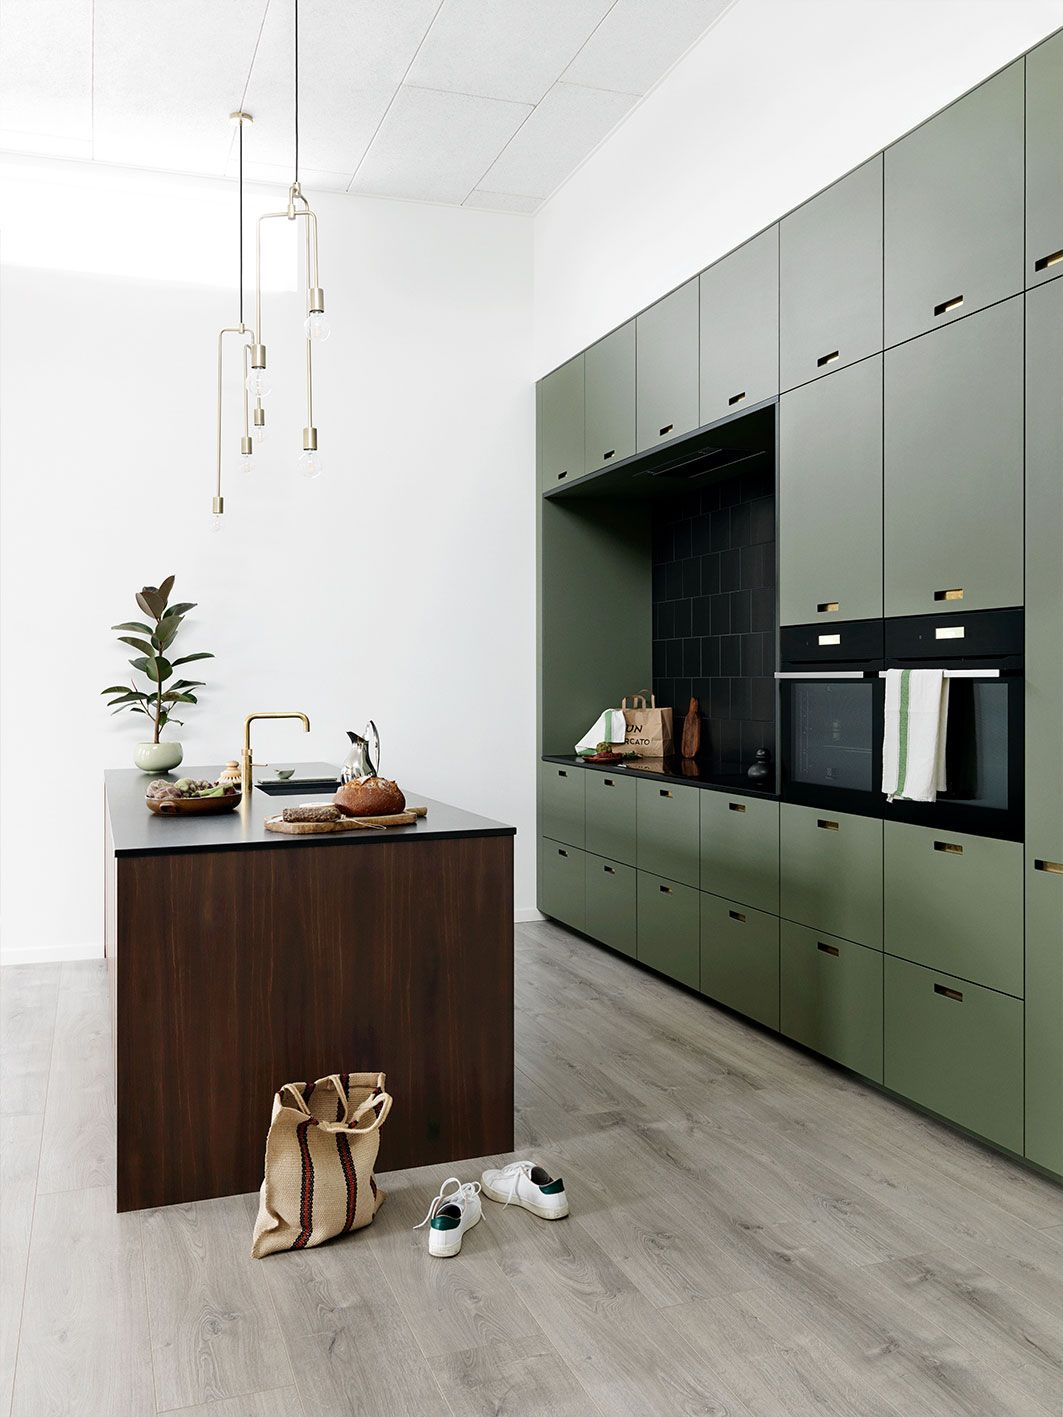 prices on fronts for ikea kitchen, price on kitchen, how much costs &SHUFL